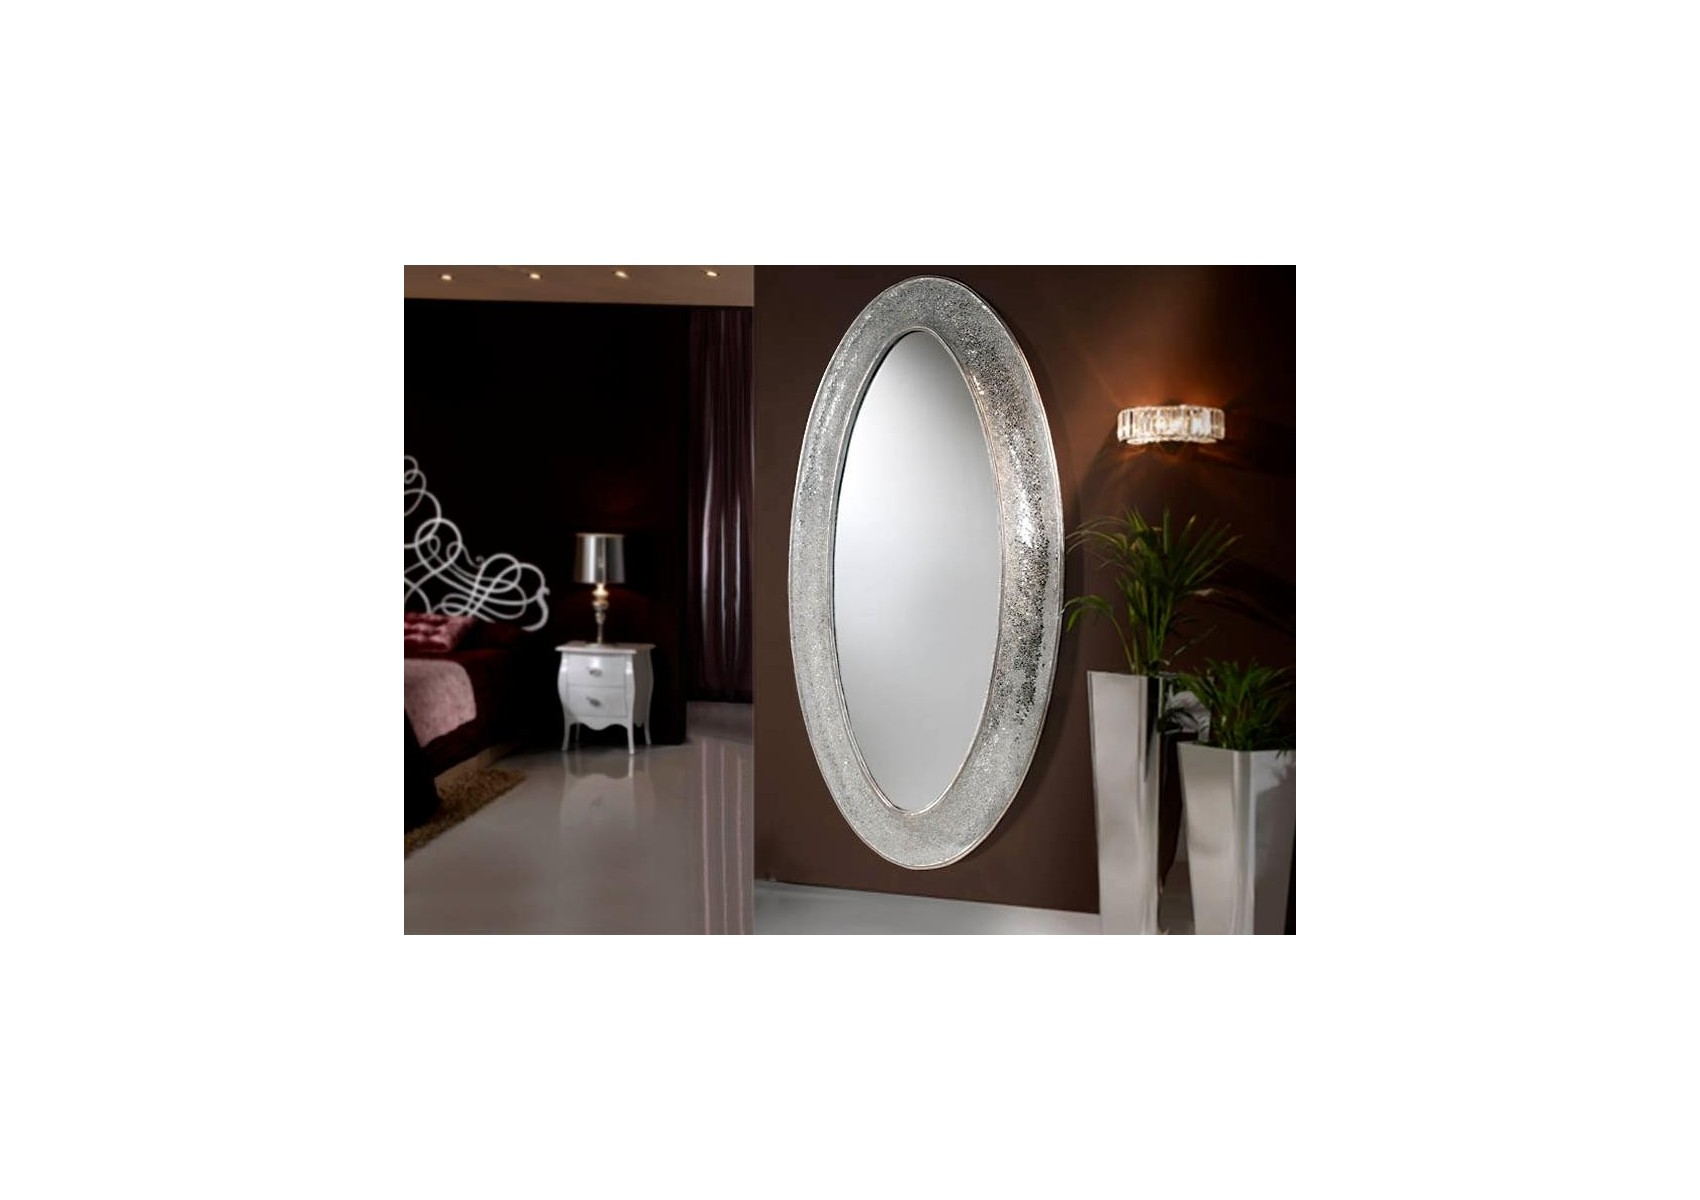 Miroir oval boudoir collection gaudi design deco for Collection miroir